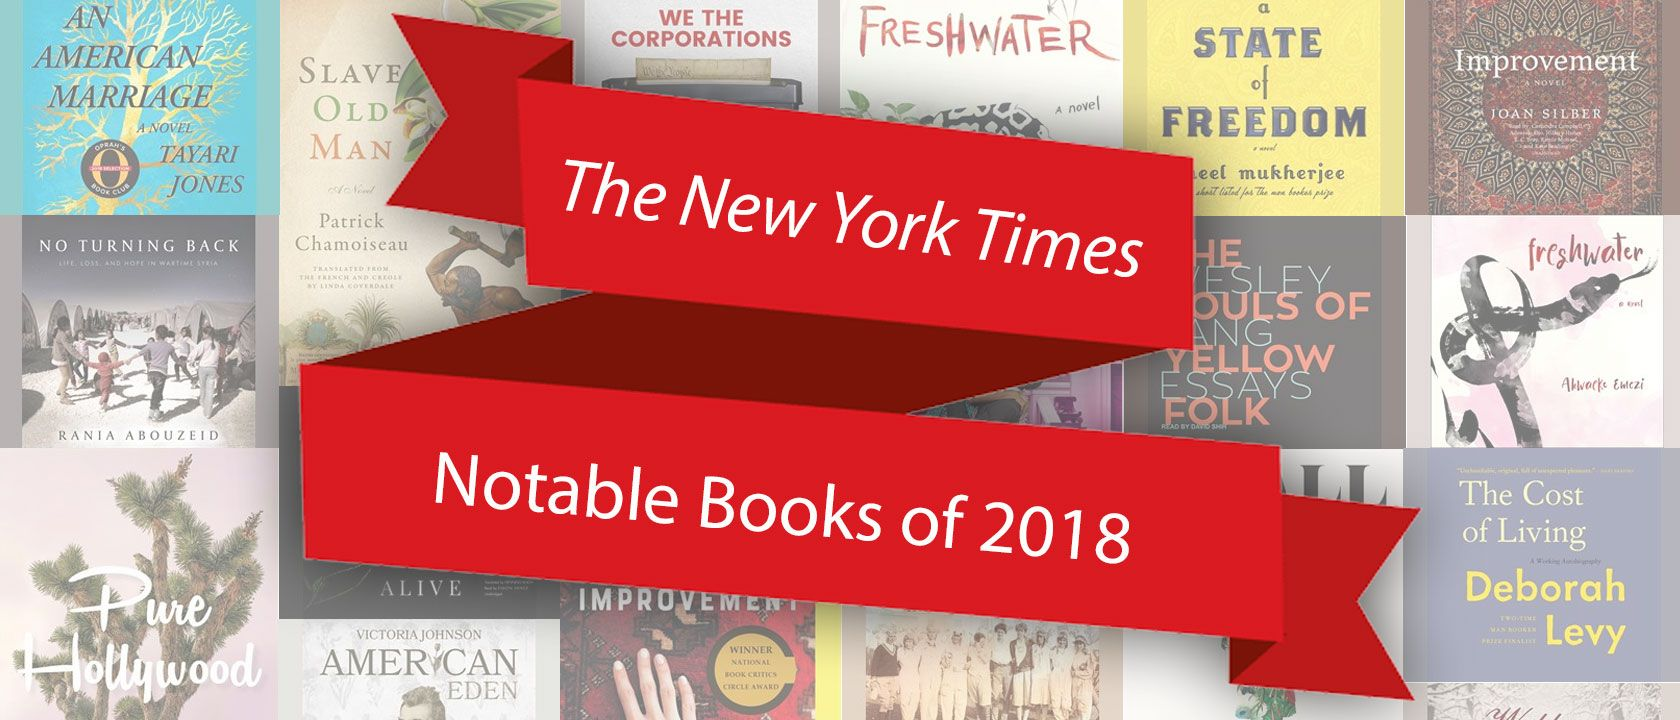 NY Times Notable Books of 2018